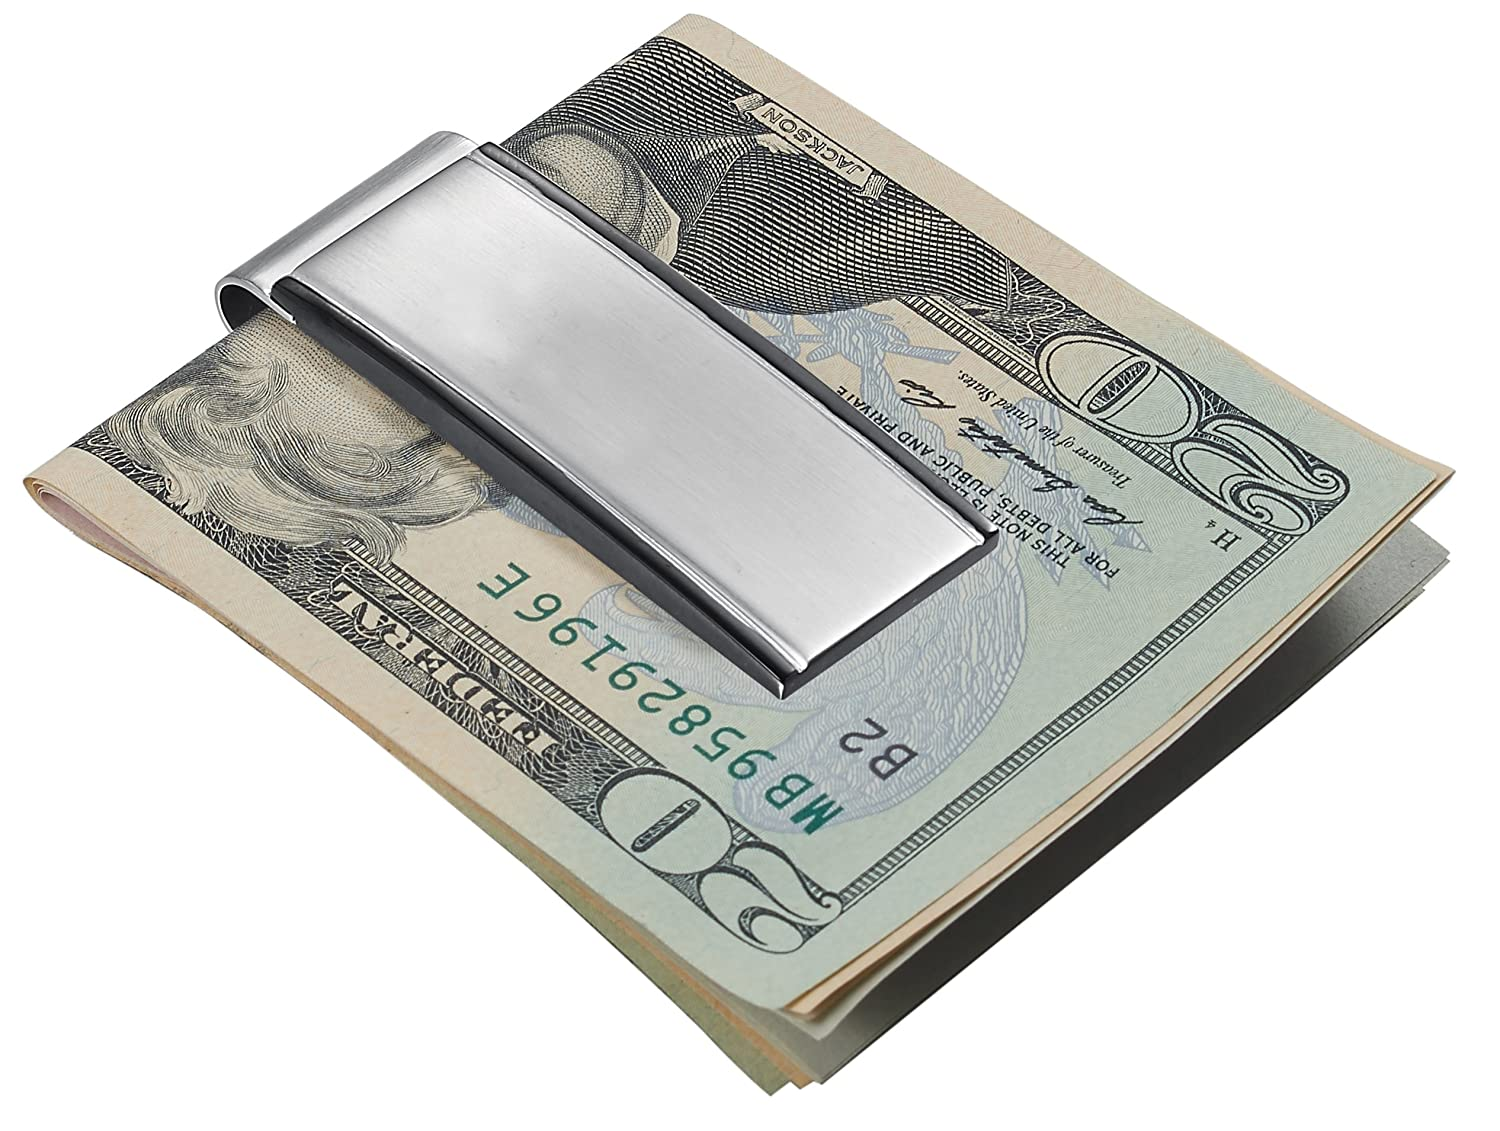 Personalized Visol Javier with Brushed Gunmetal Money Clip with Free Engraving